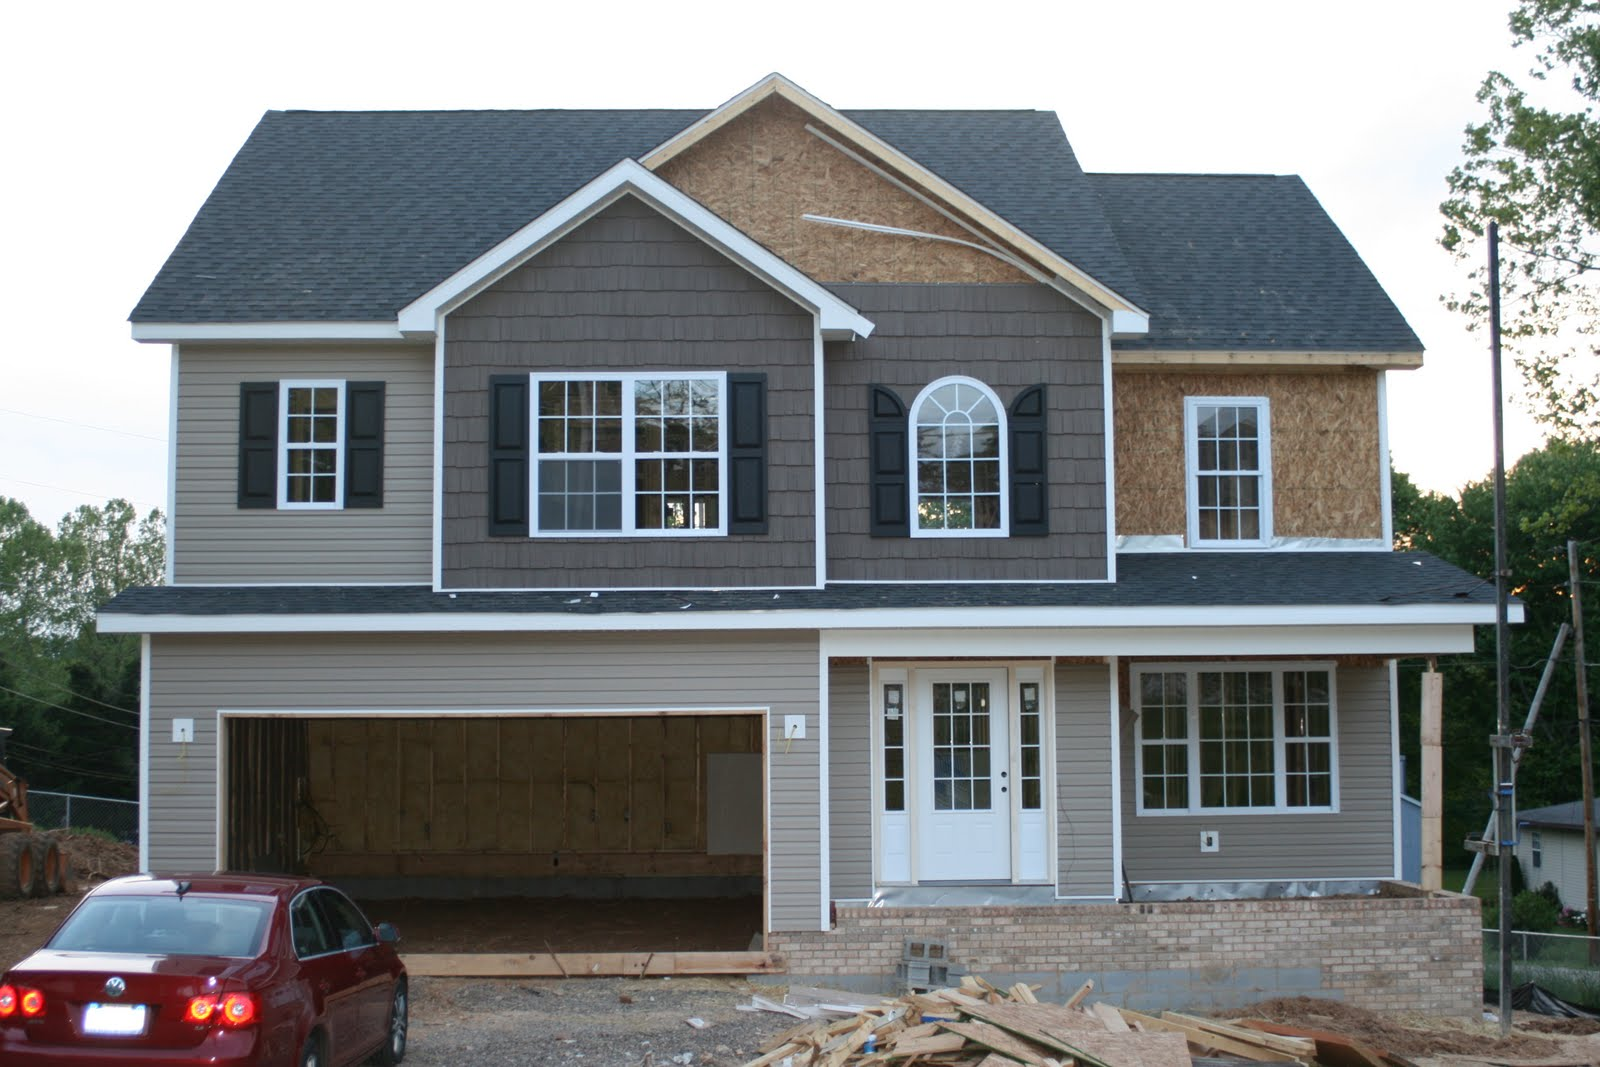 New House Construction Progress: Shaker Siding